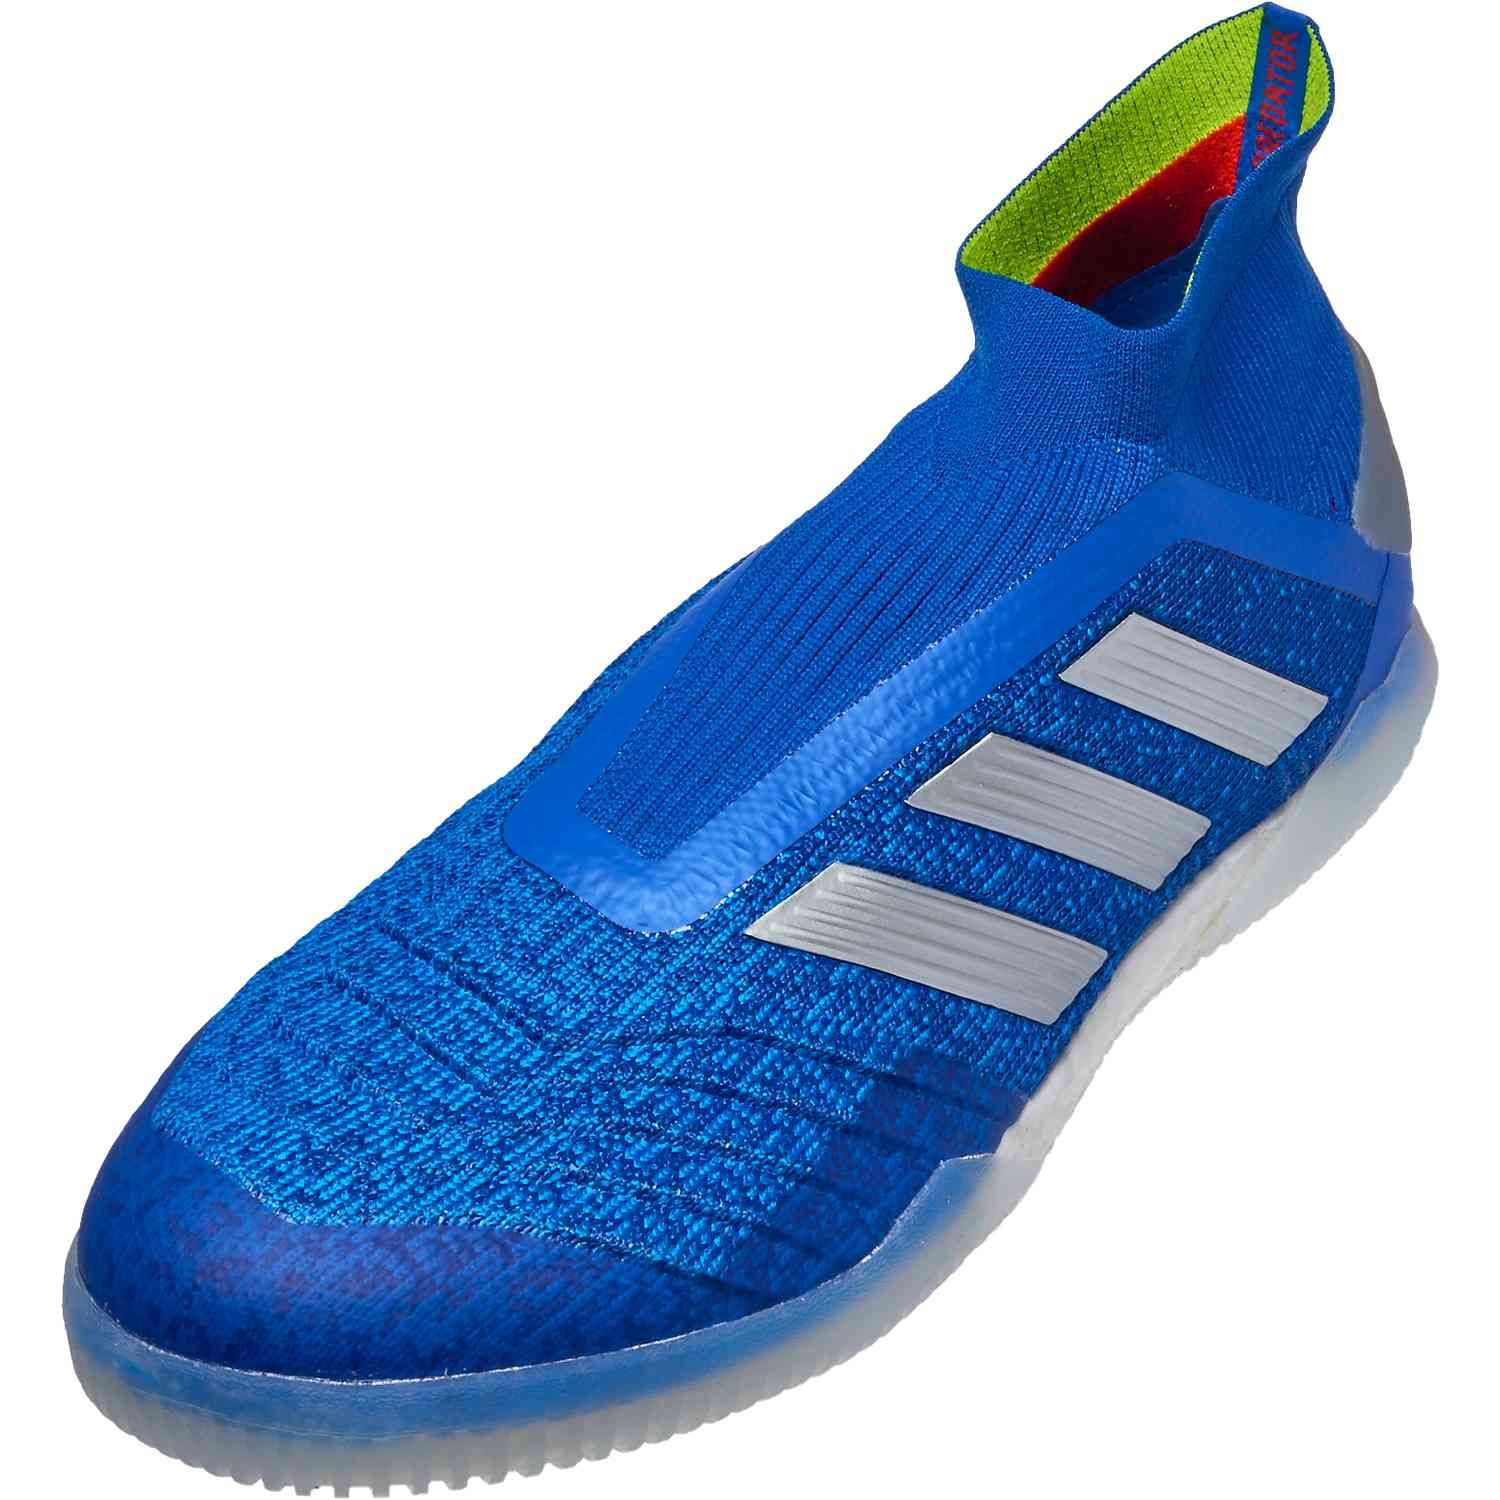 buy popular 32a2e d06ef Shop for the adidas Predator 19+ indoor soccer shoes from the Exhibit pack  today. Get them from SoccerPro today.